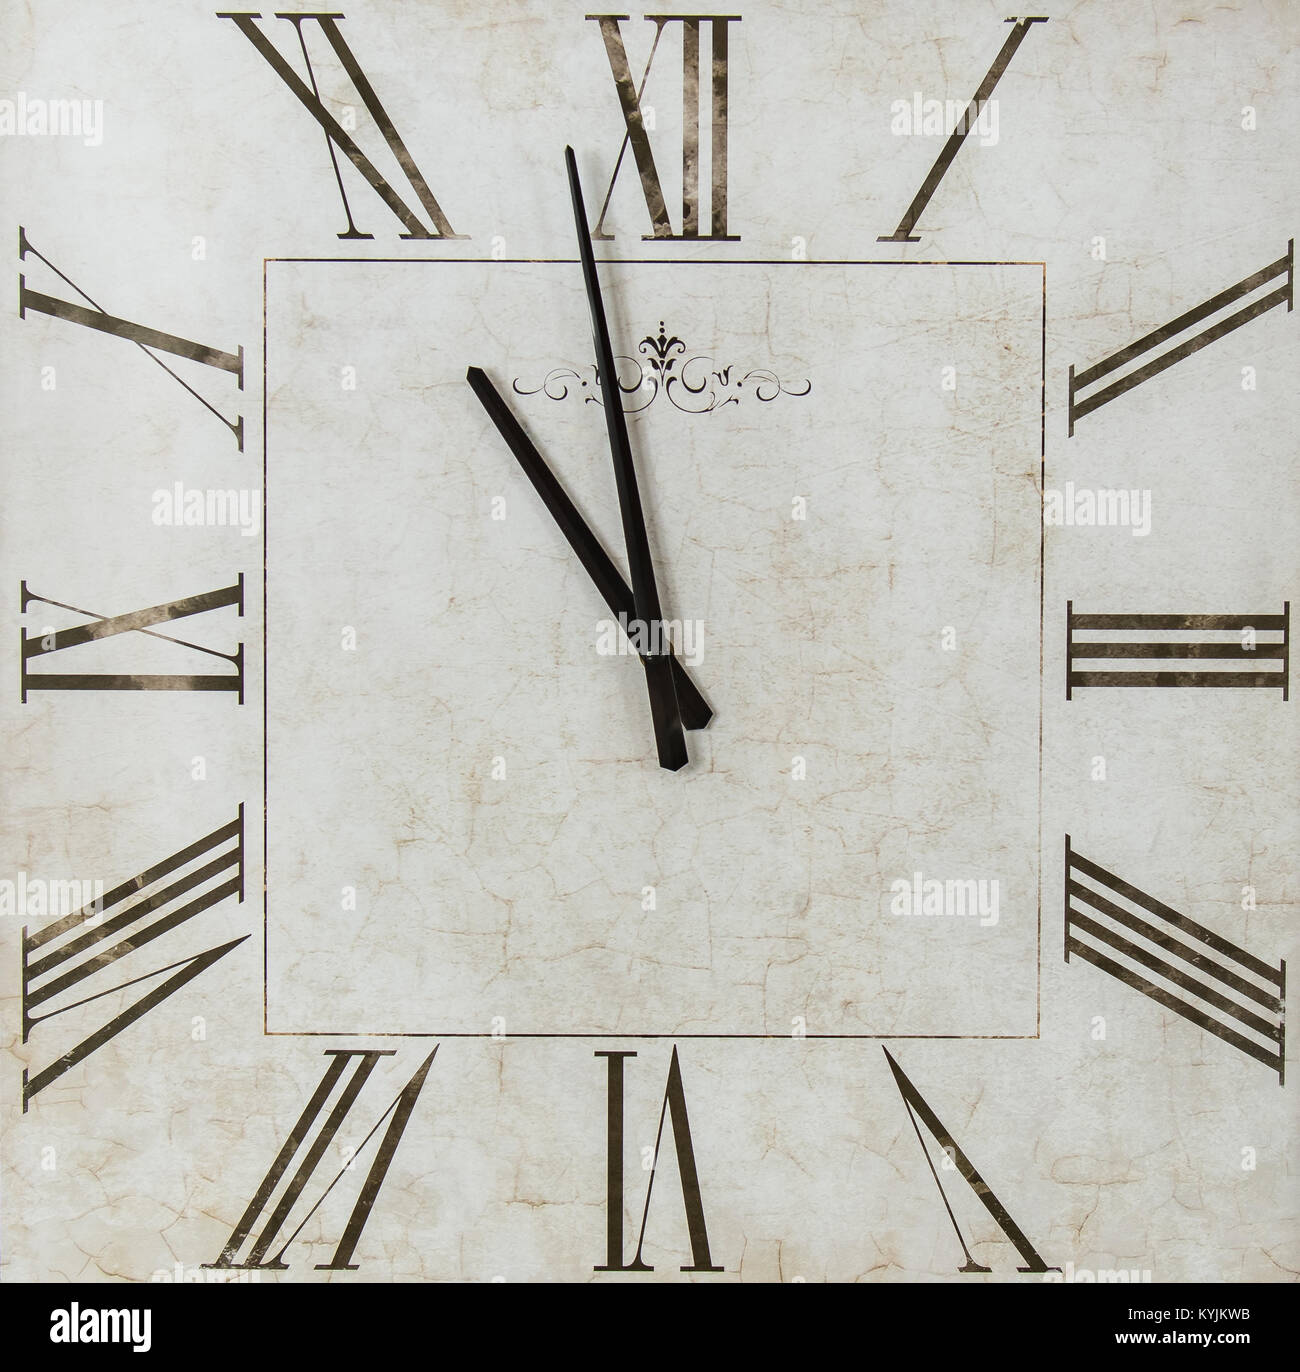 Antique Square Time Piece Clock White background with Black Roman Numerals - Stock Image